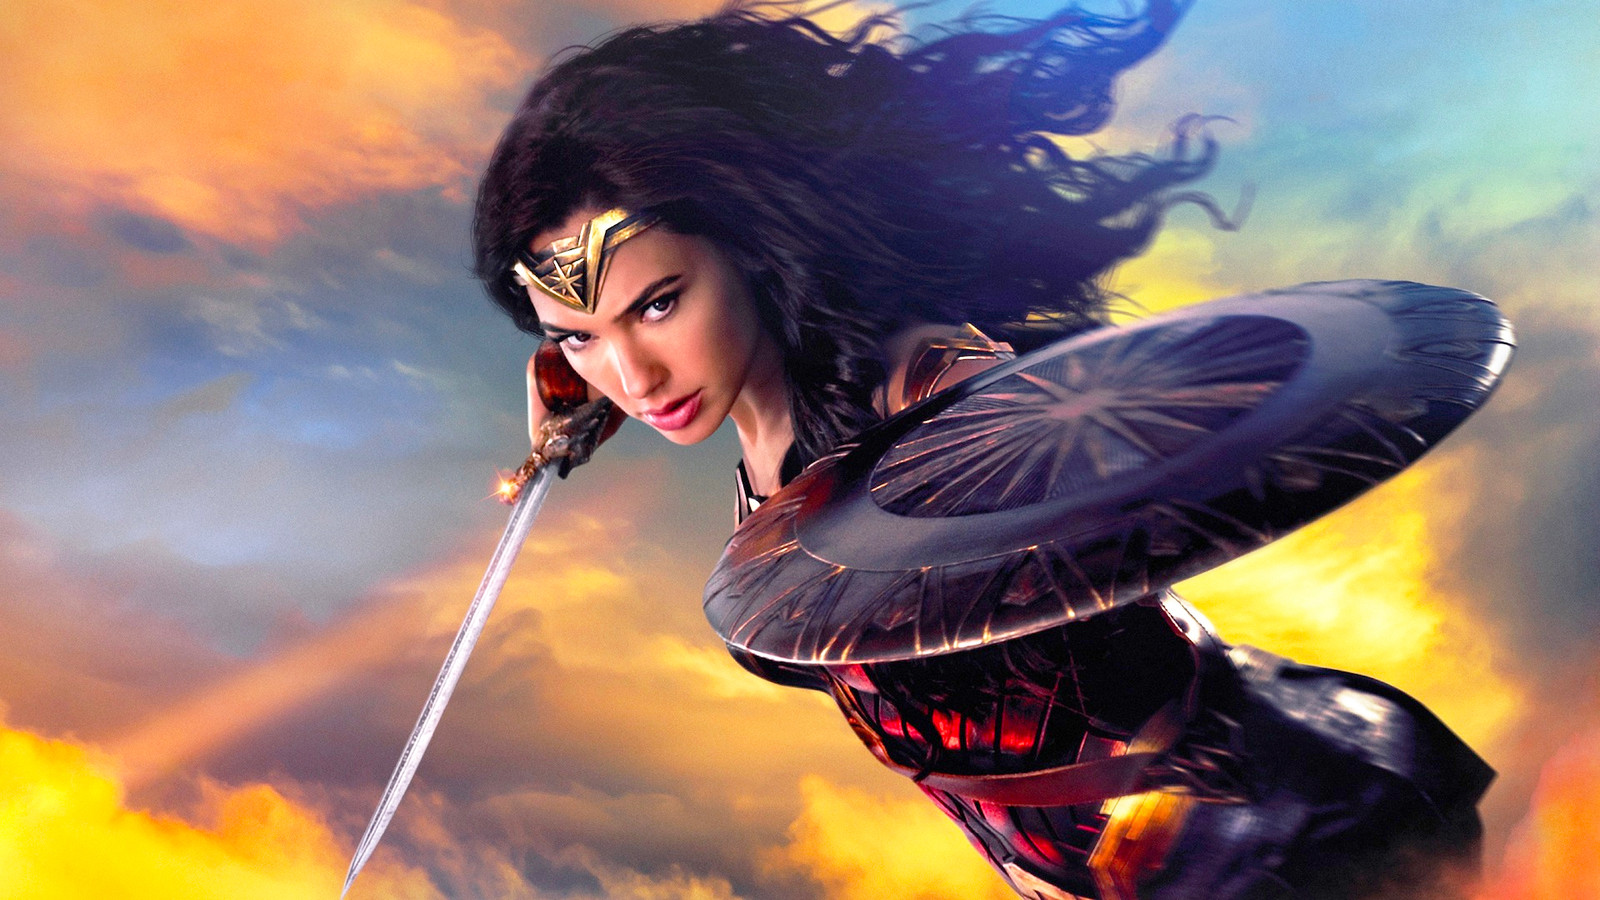 'Wonder Woman' Sequel Pushed Back to 2020